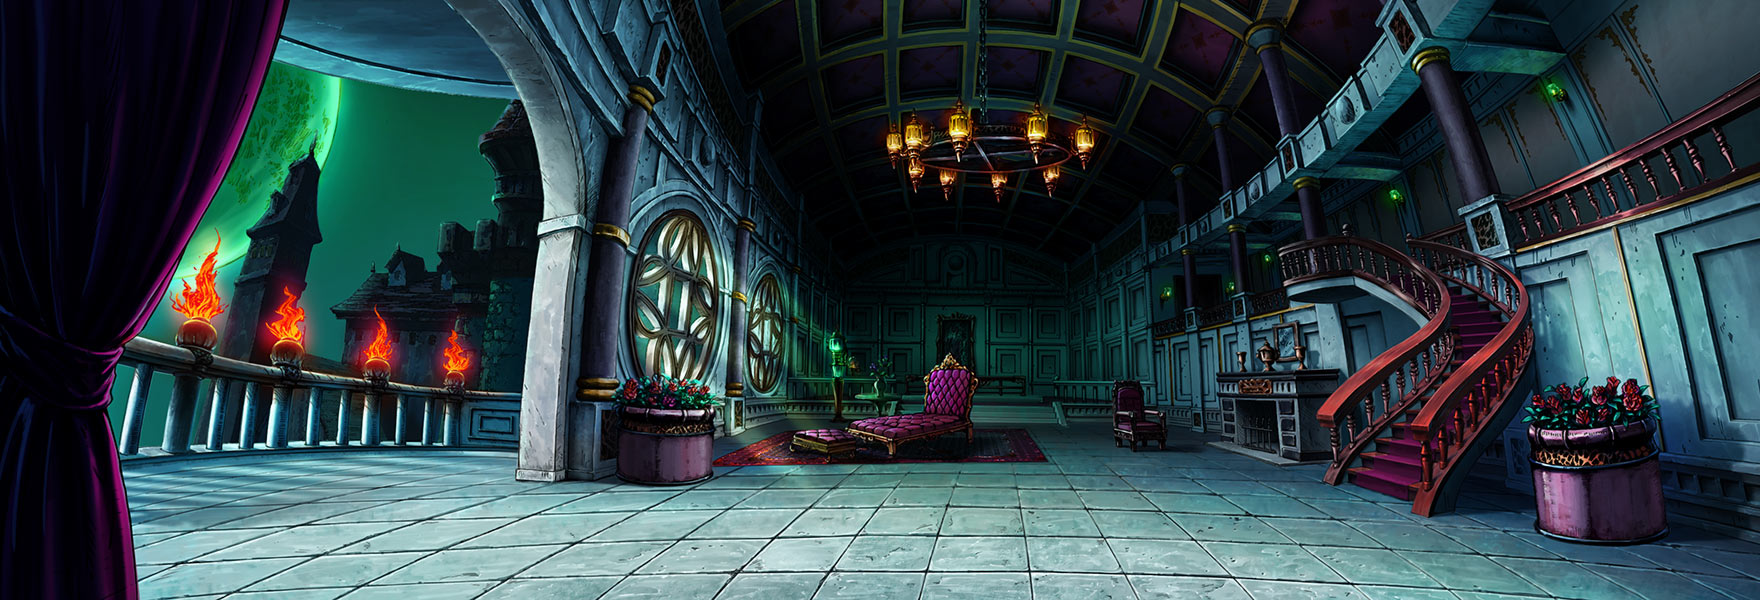 Epic Anime Wallpaper Dio S Mansion Stage Characters Amp Art Jojo S Bizarre